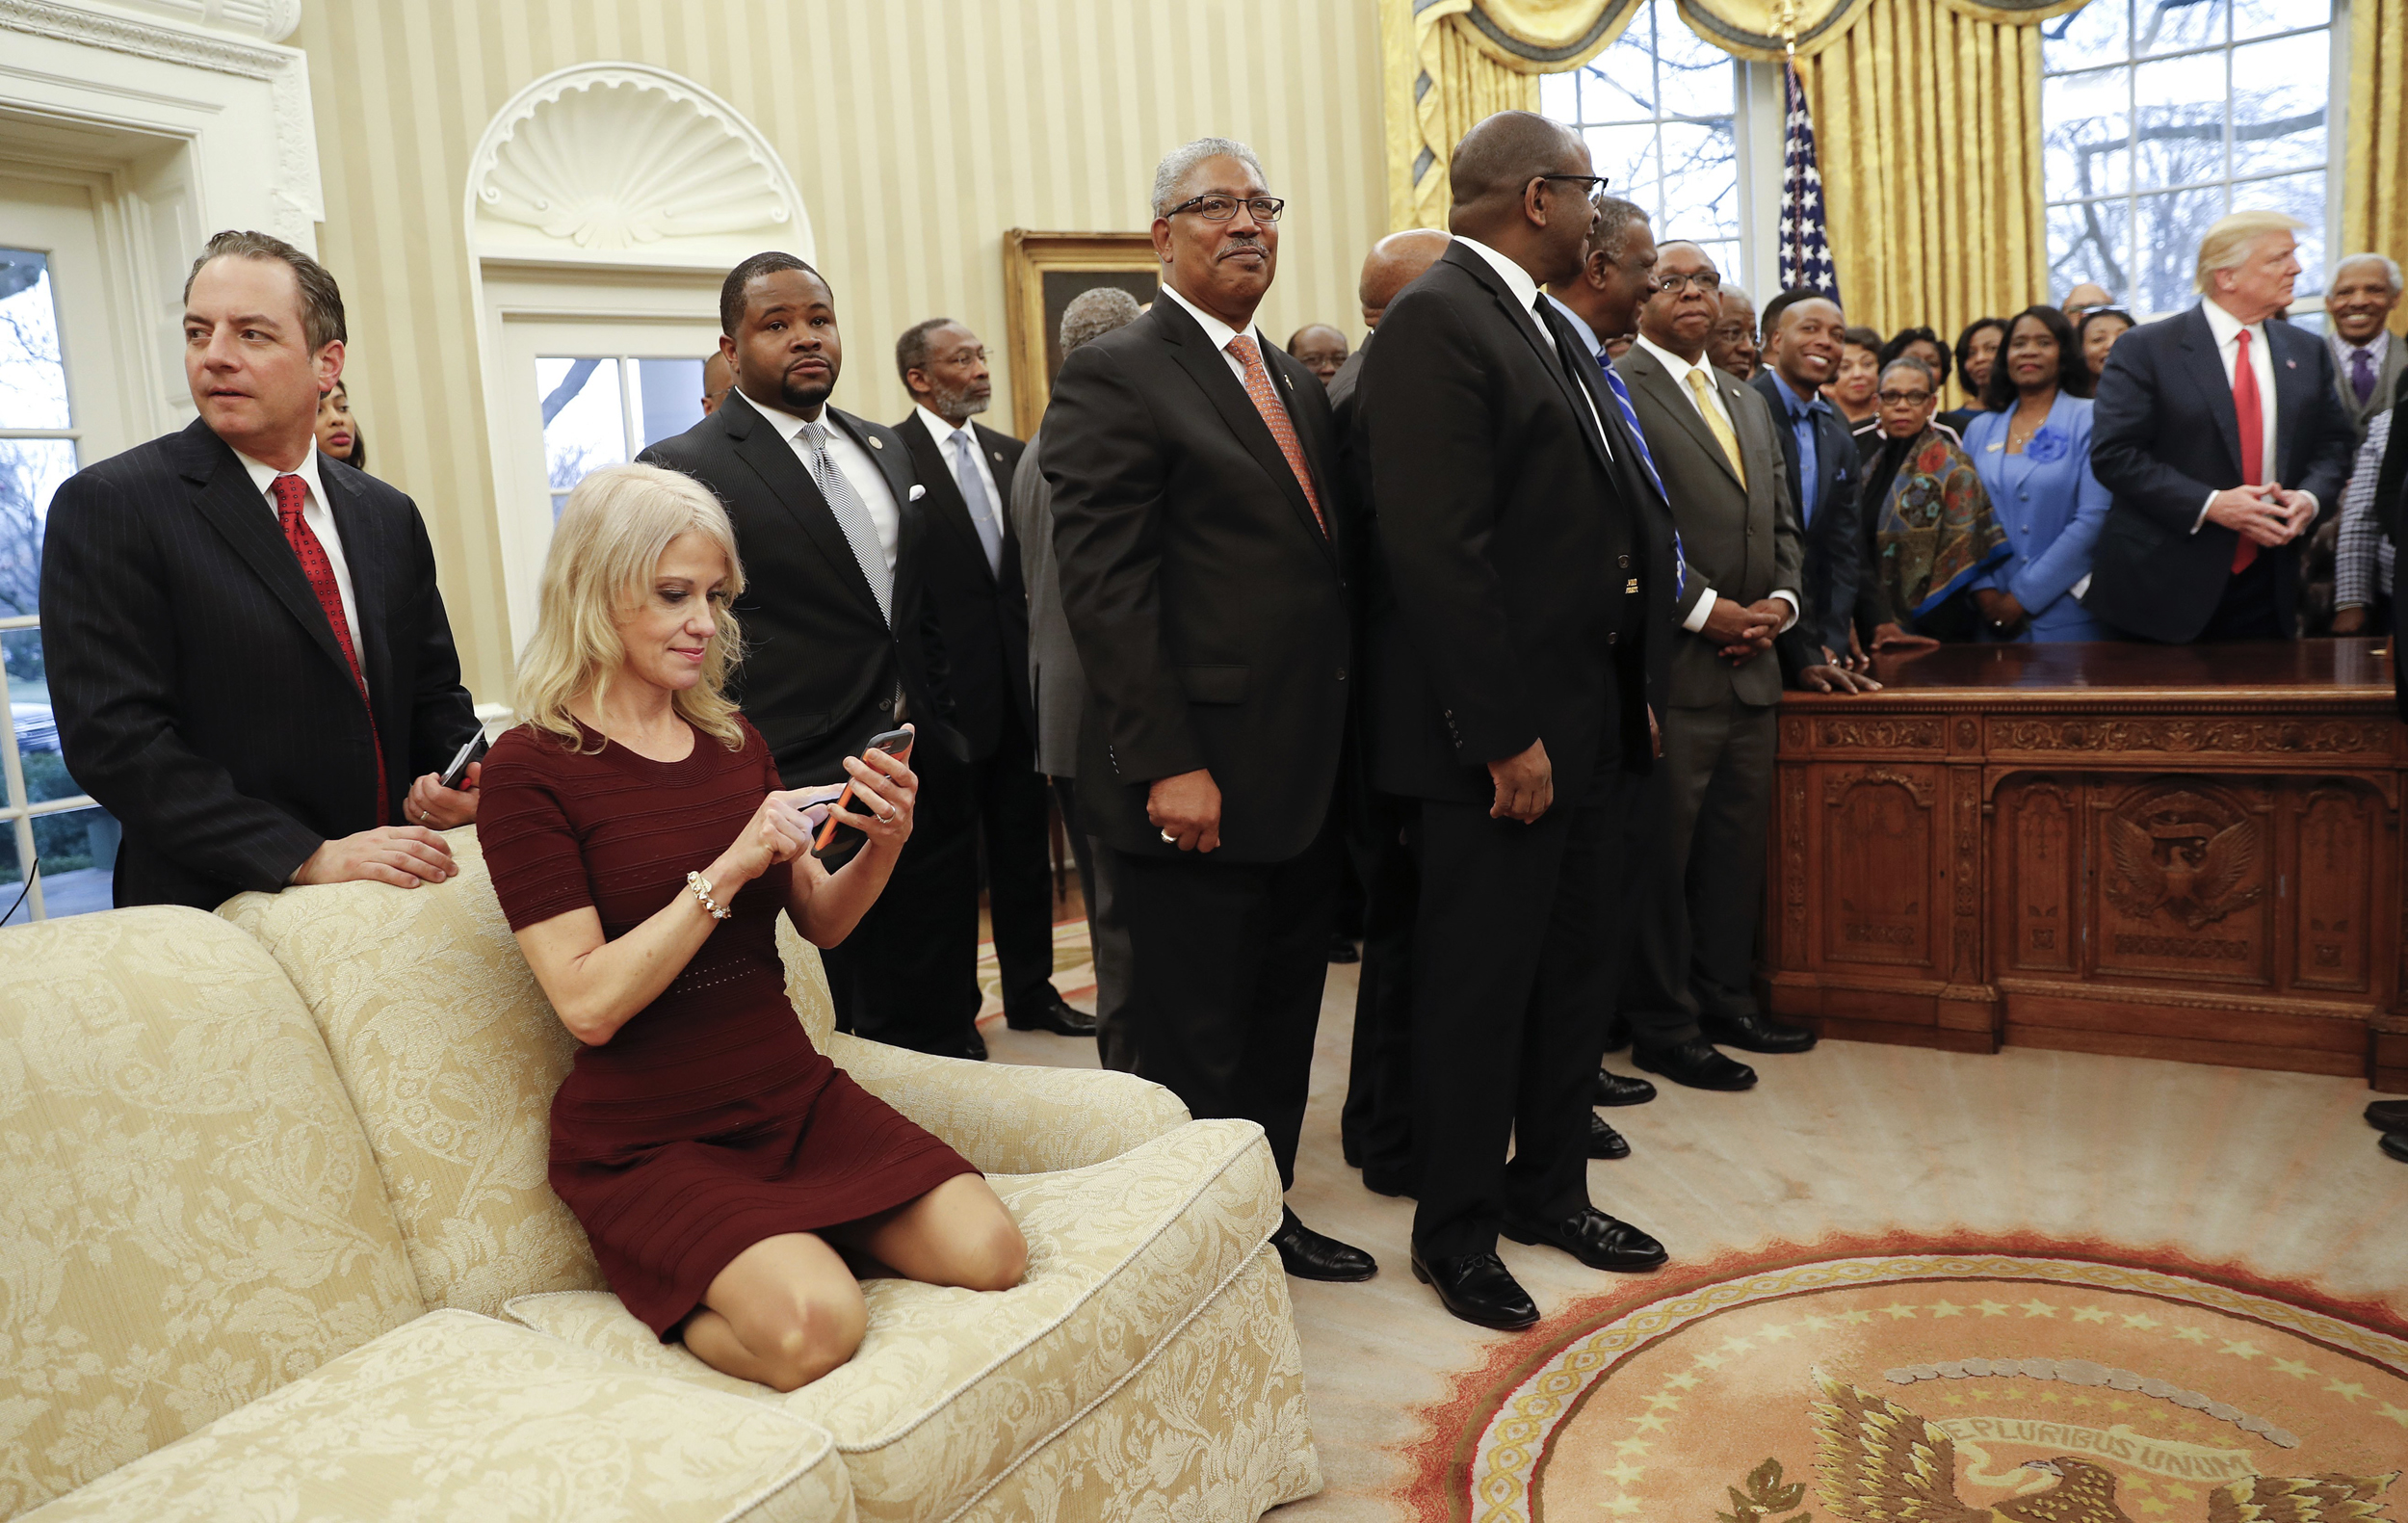 oval office picture. Oval Office Picture